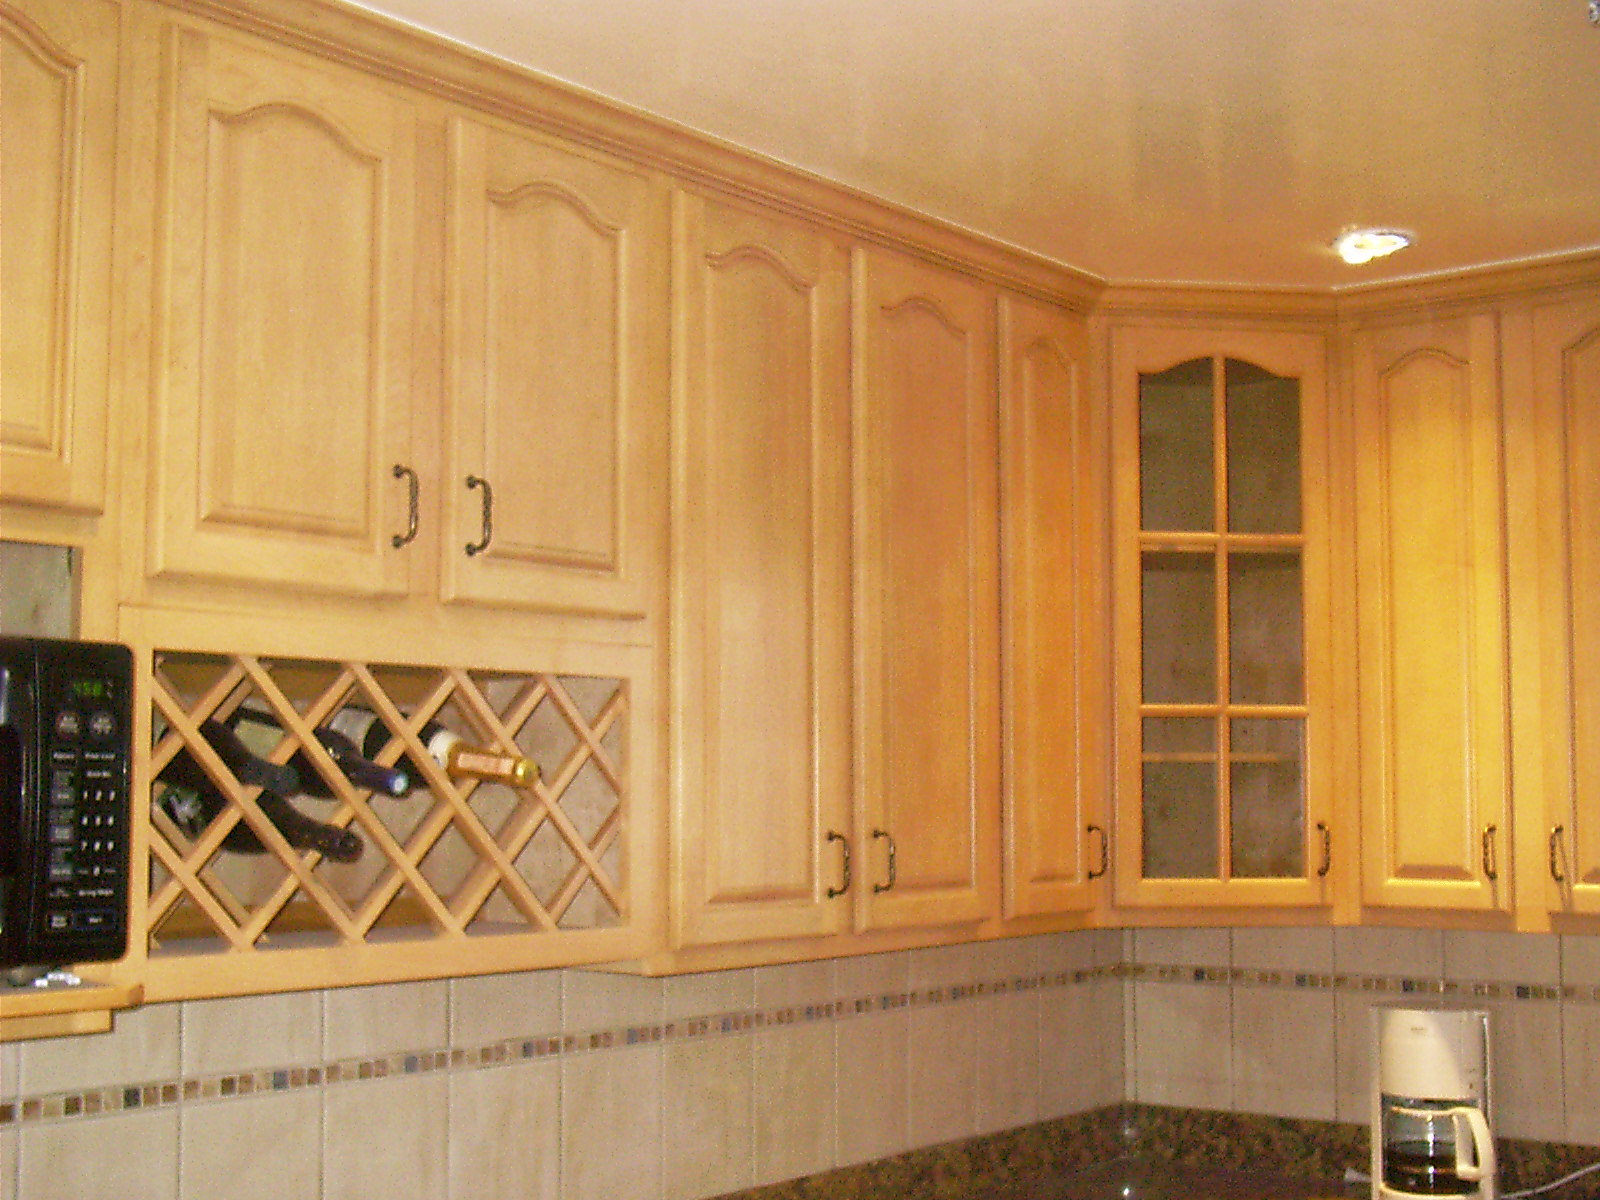 allcabinets cabinets for kitchen Natural Maple Cathederal Contemporary Kitchen Cabinets